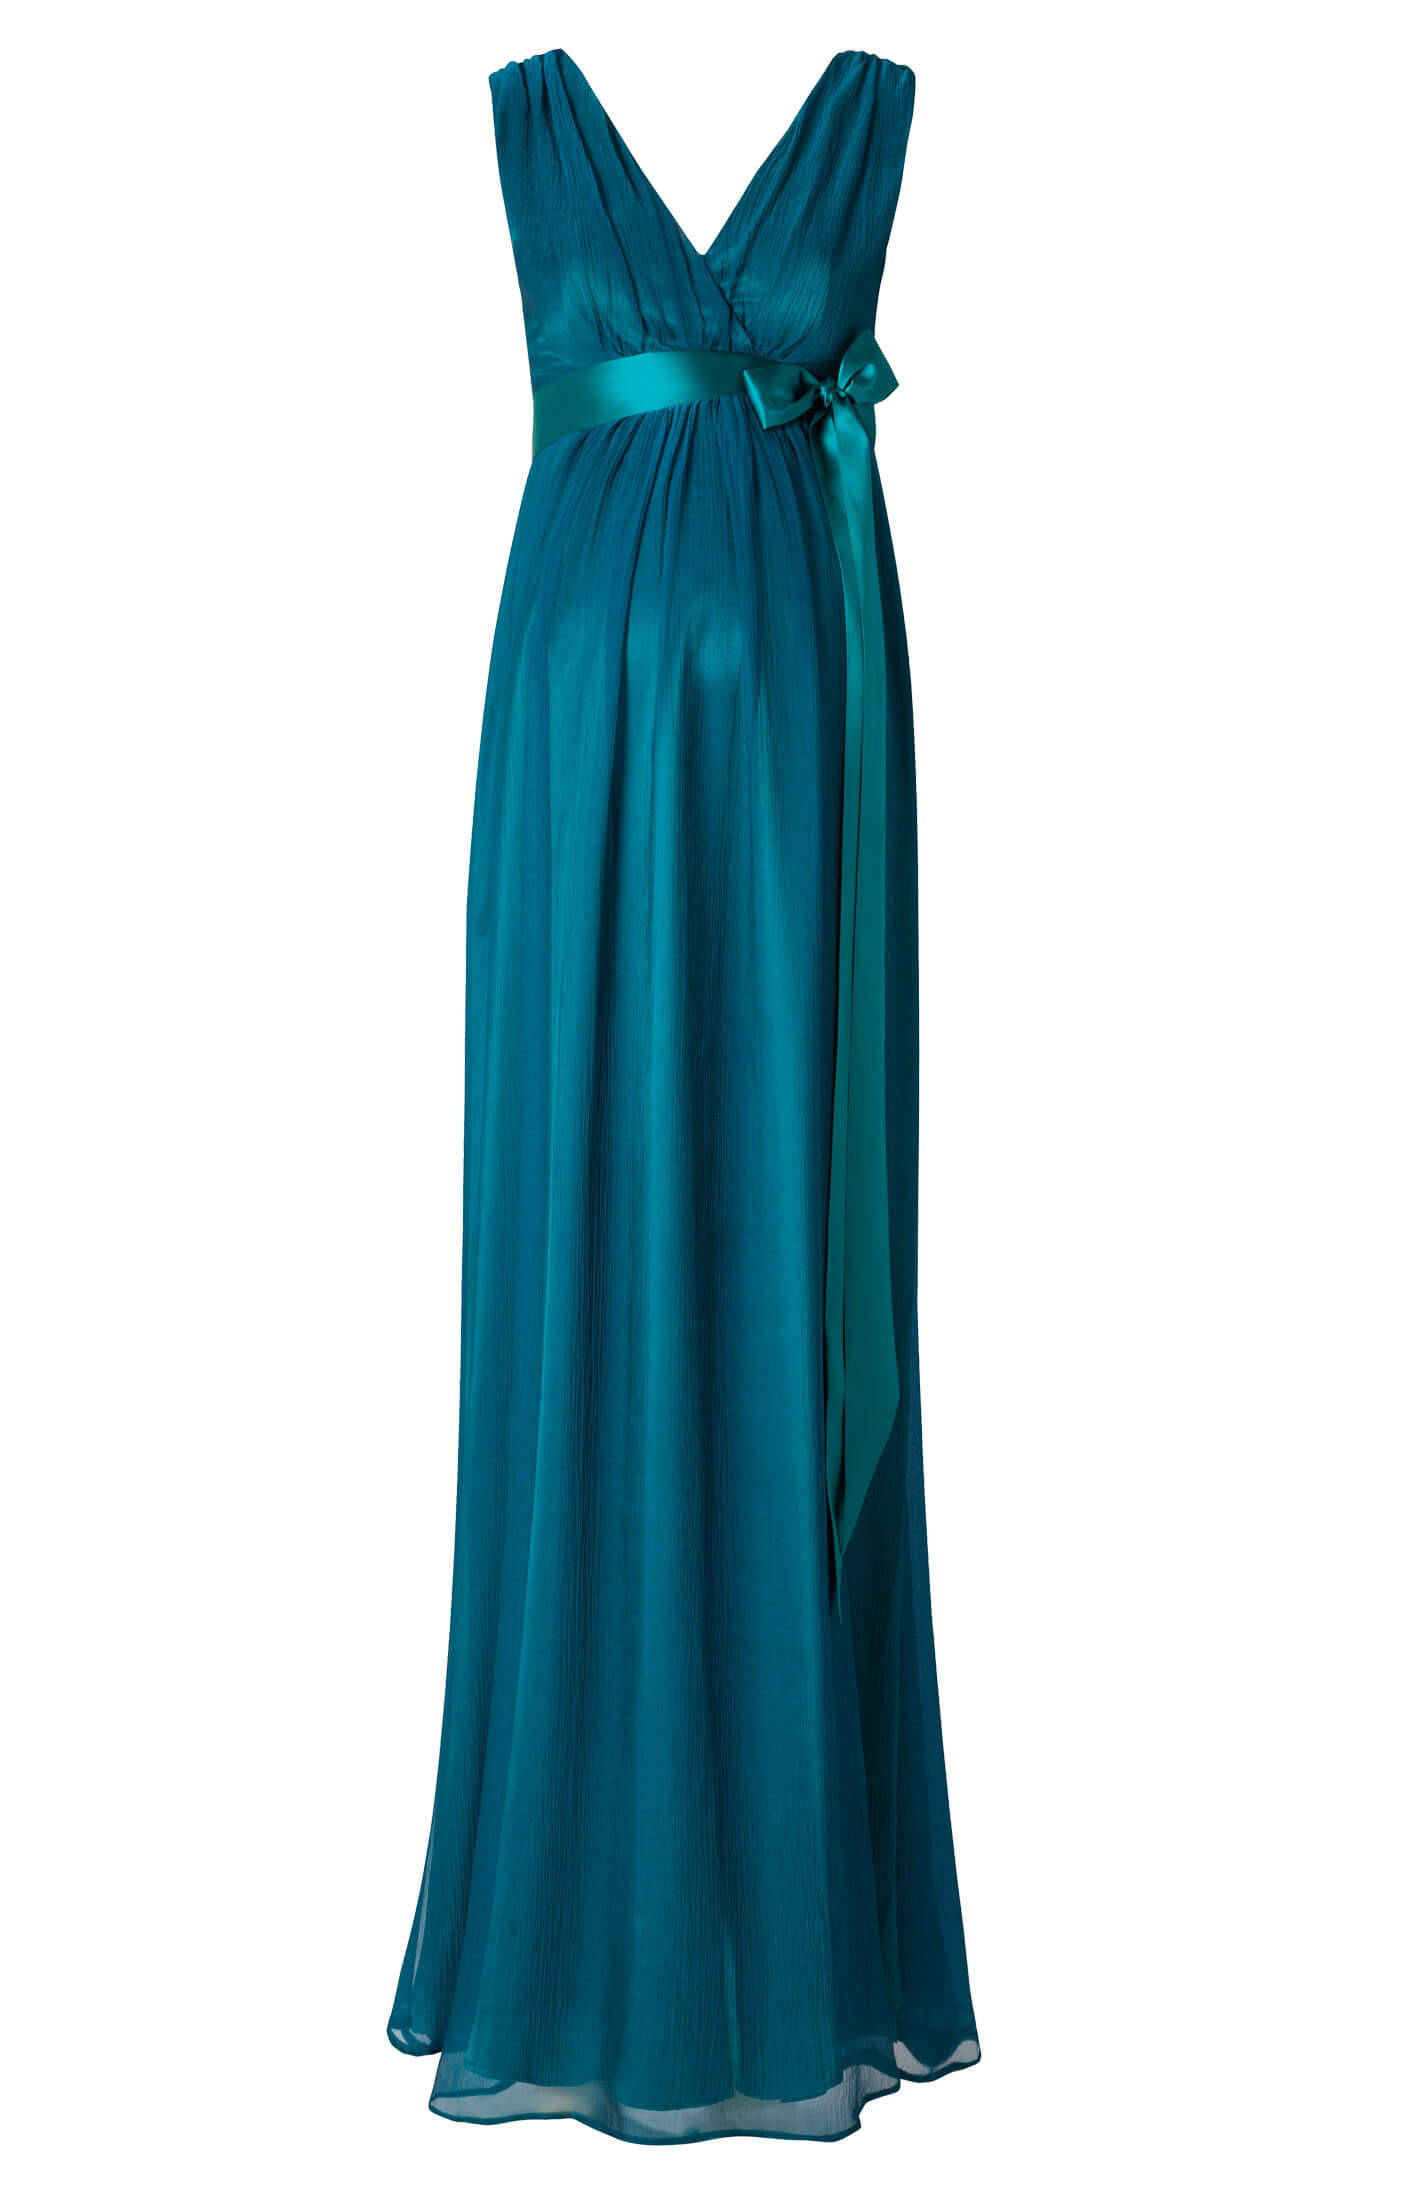 Ava Maternity Gown Long Aegean Blue - Maternity Wedding Dresses ...